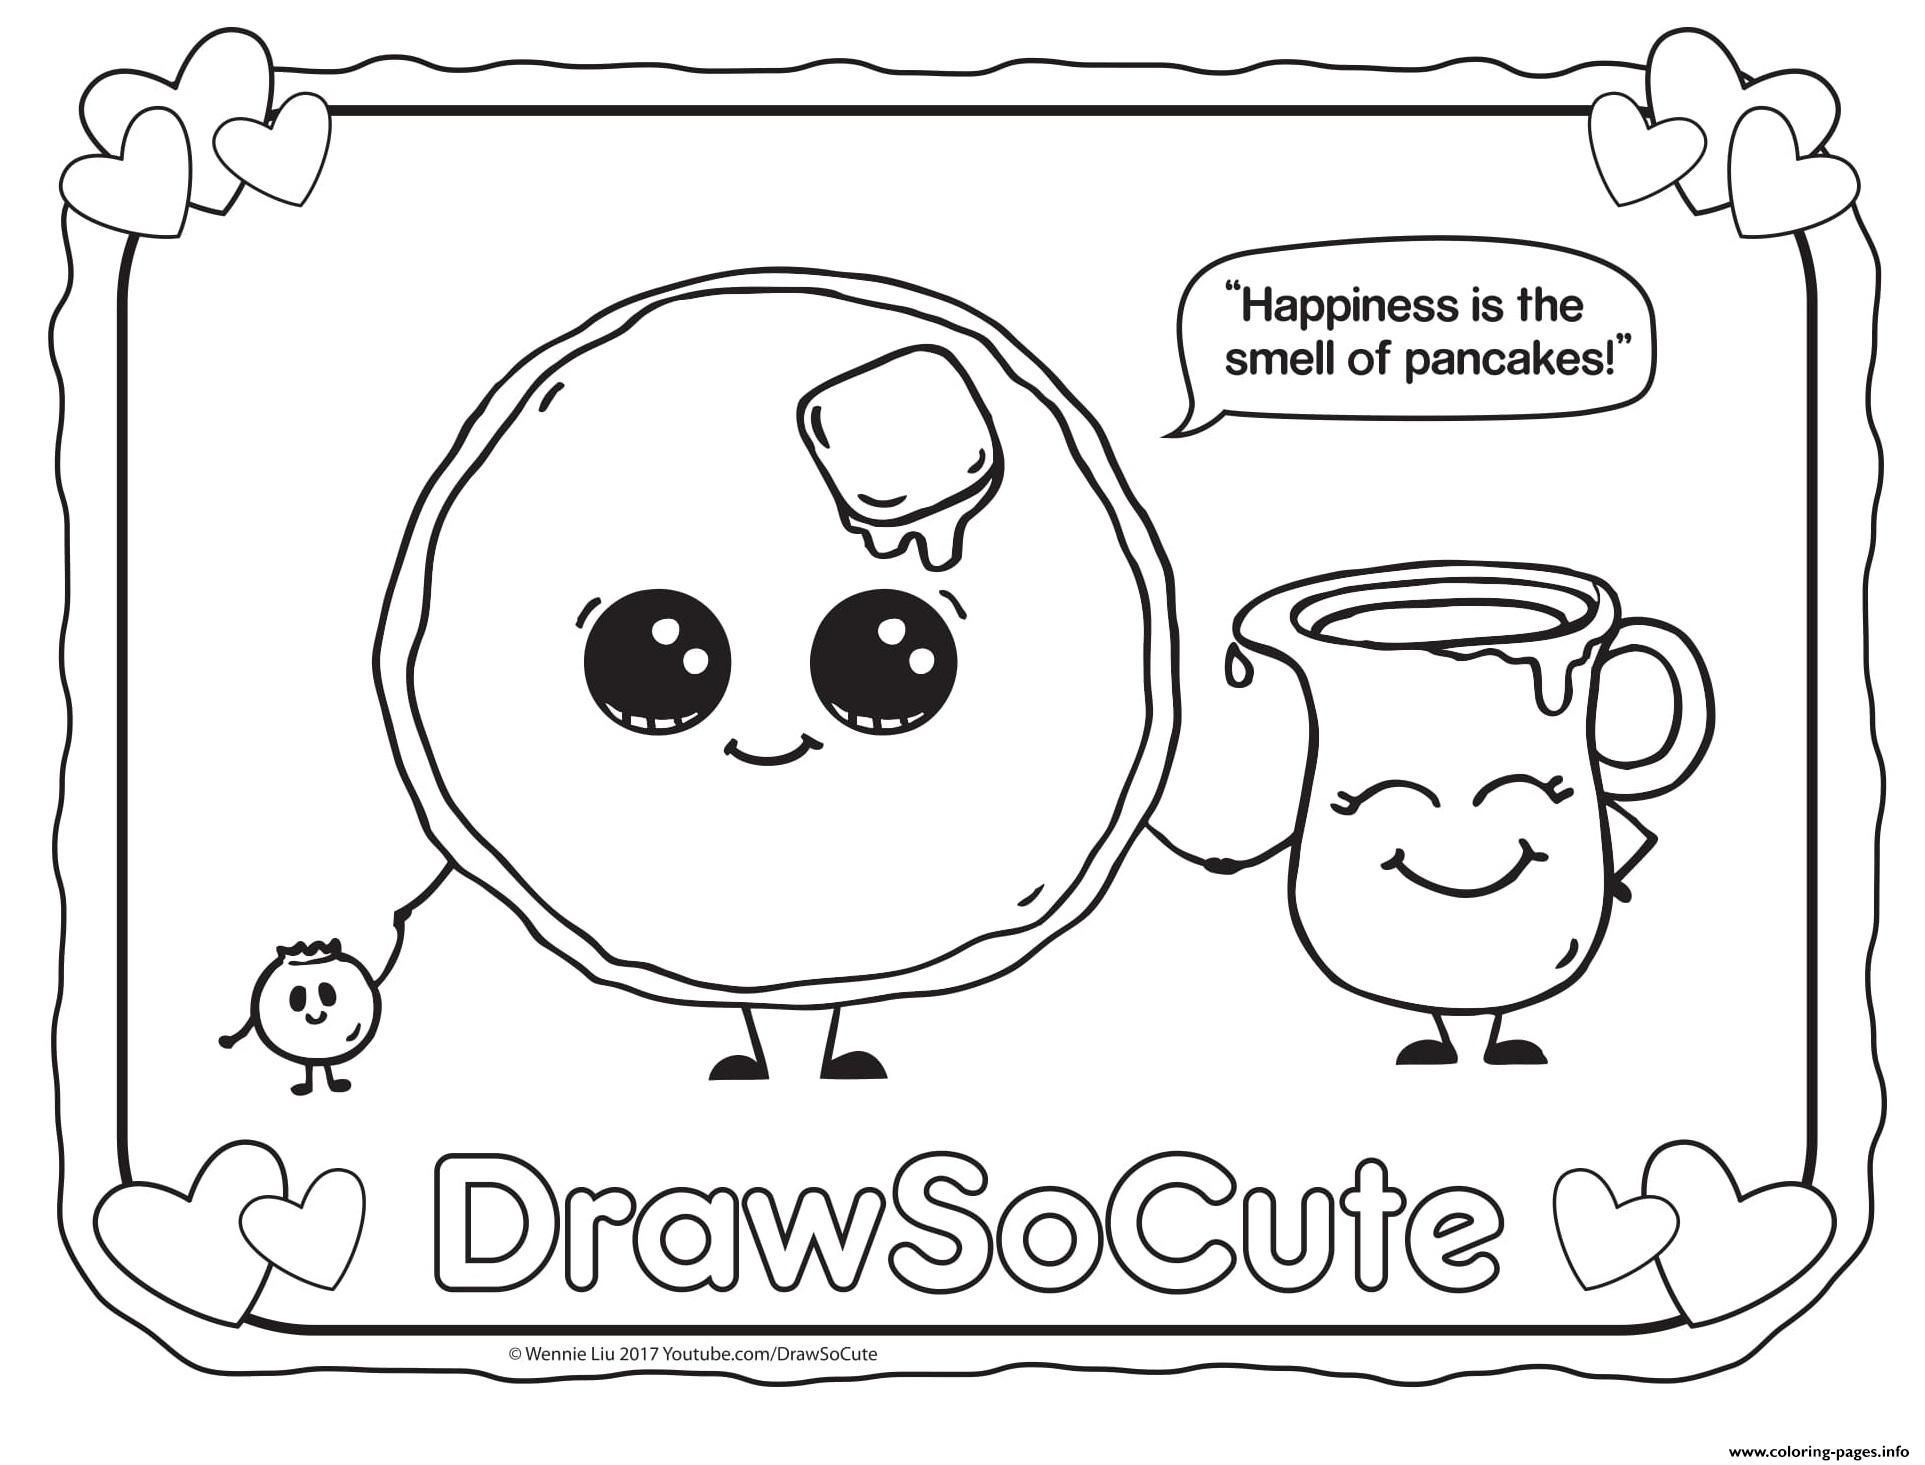 Coloring Pancake Draw So Cute Printabl with Colouring Pages For